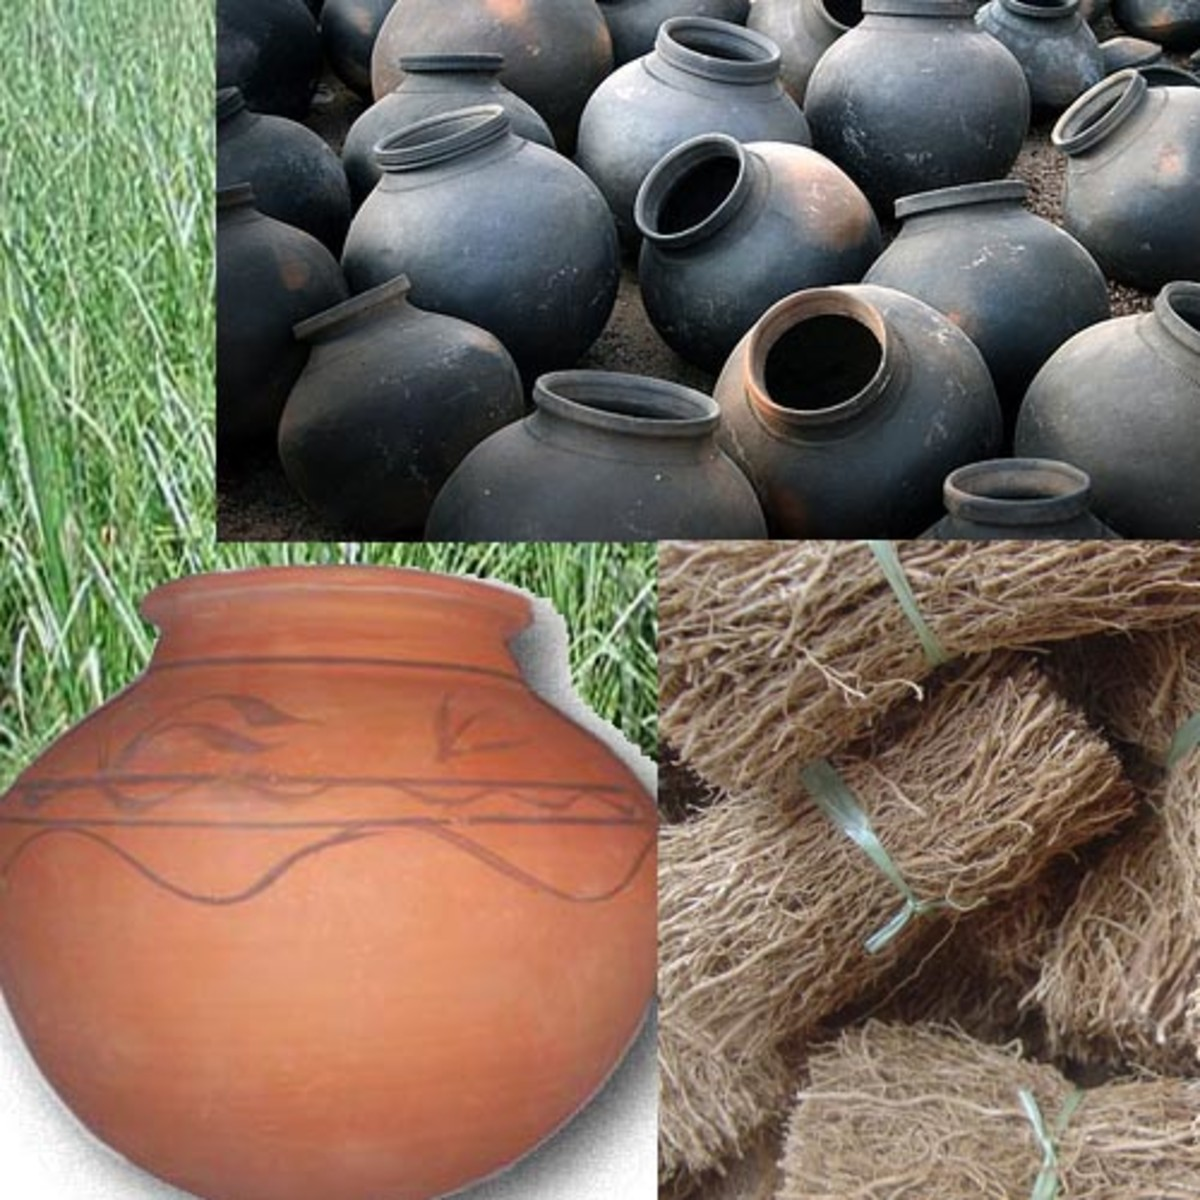 Matkas are usually made in black or red colour. khus roots are added to water to imparts its health benefits as well as a lovely fragrance to the water